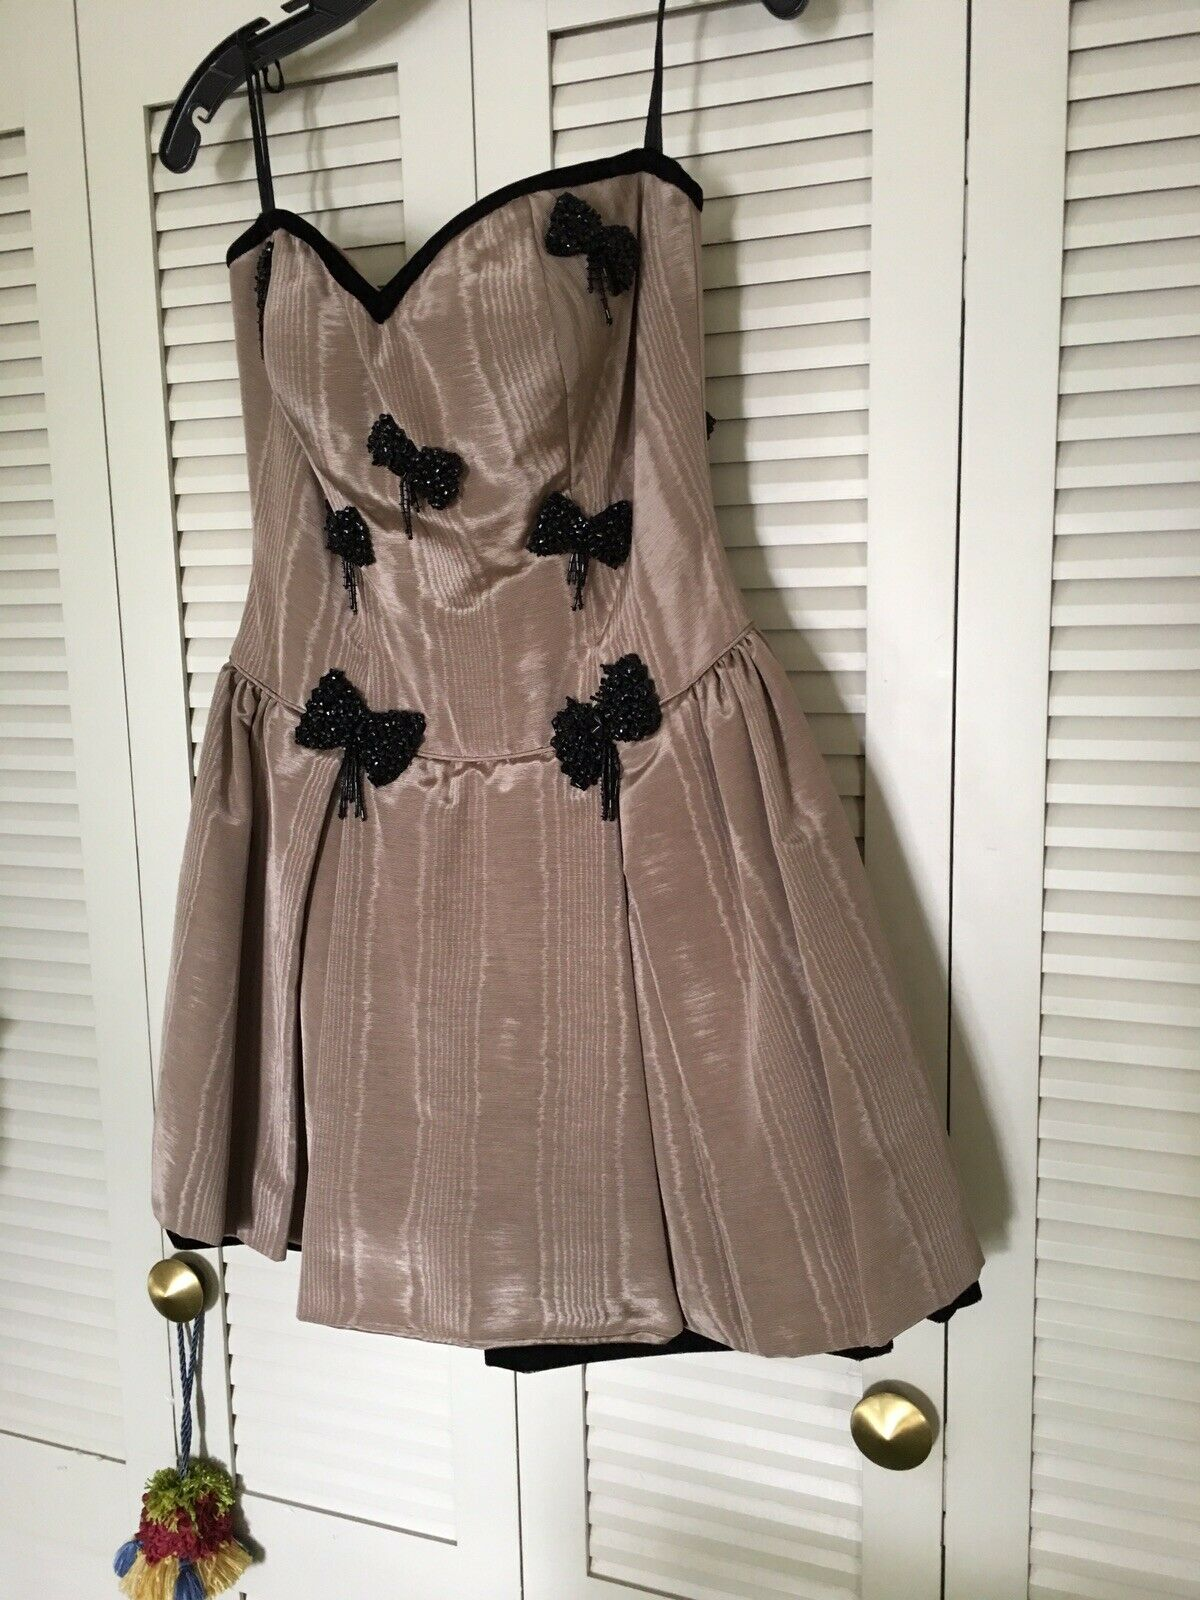 Stunning COCKTAIL DRESS by Victoria sz 8-color looks like a Mocha Latte